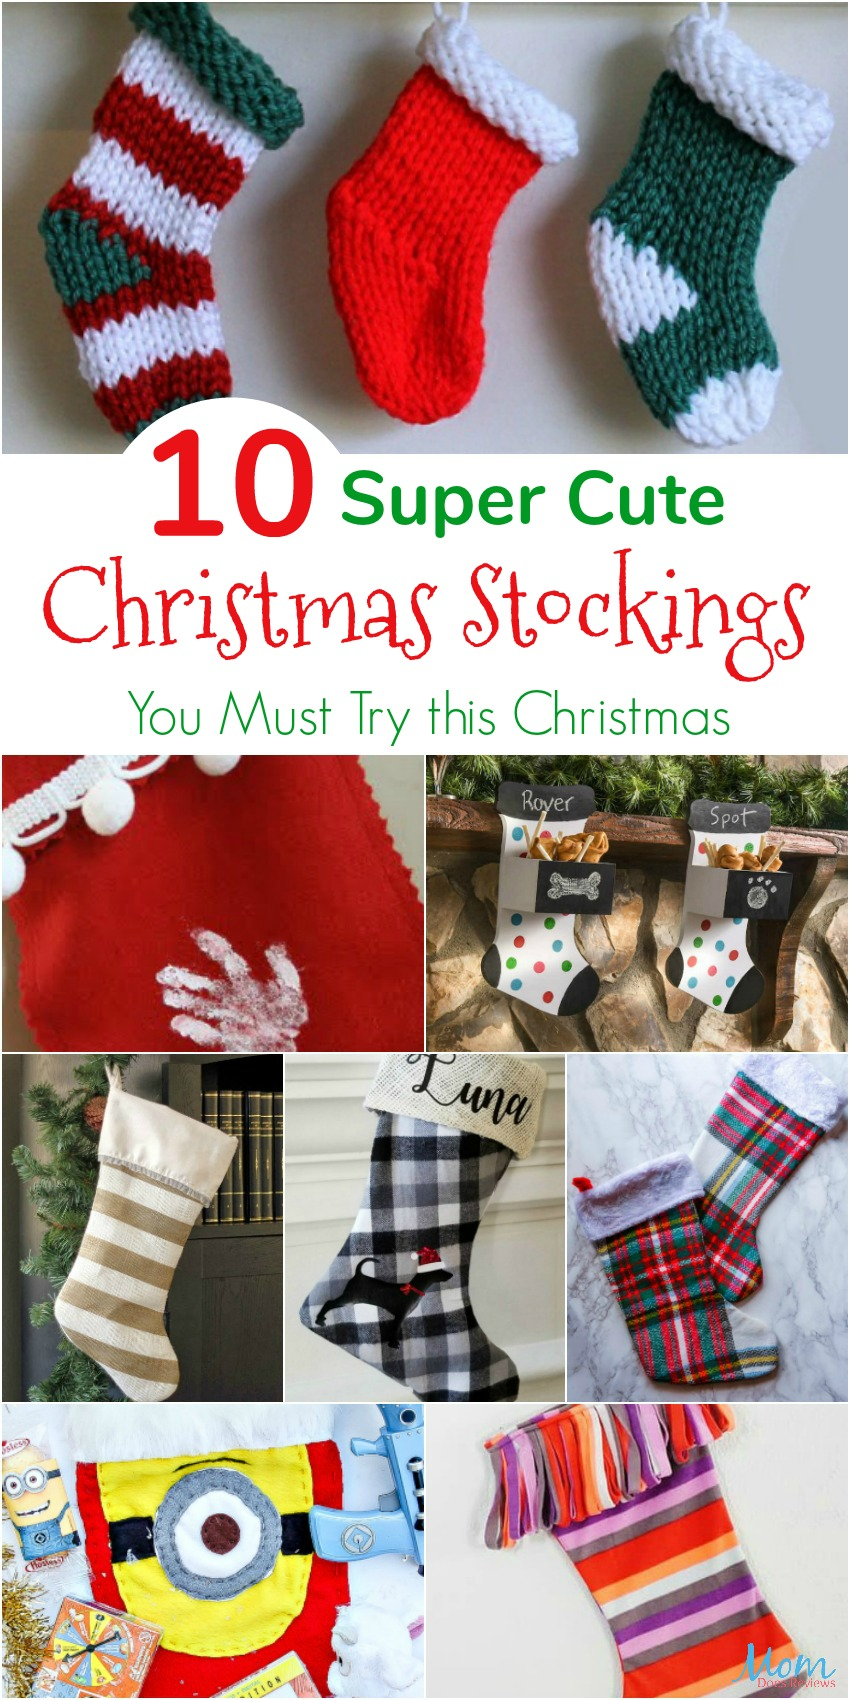 10 Super Cute DIY Christmas Stockings You Must Try this Christmas #DIY #crafts #christmas #crafty #christmascrafts